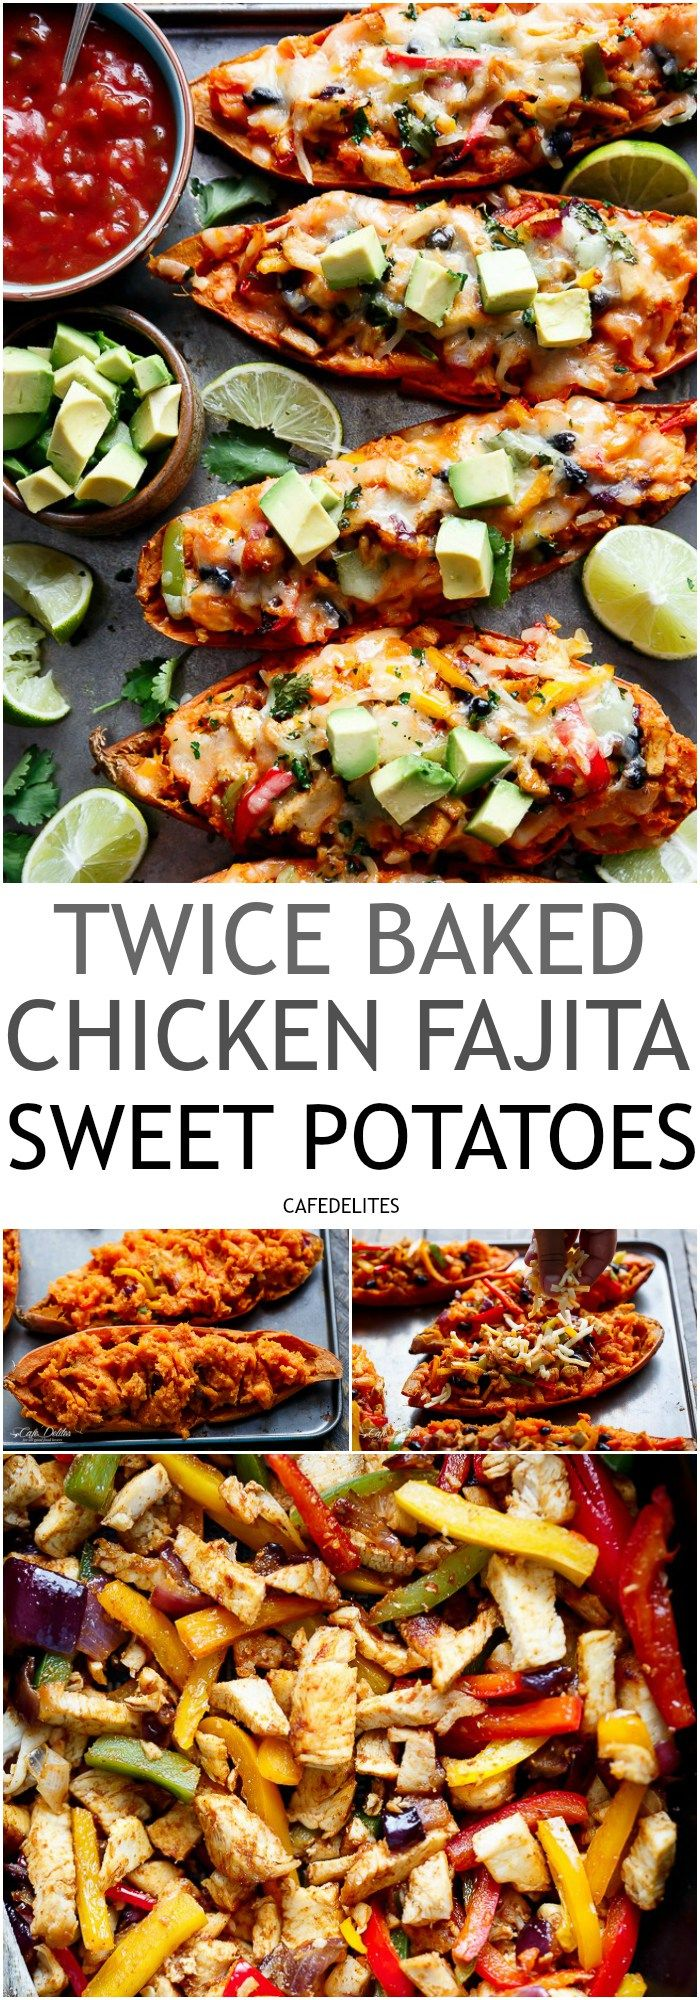 TWICE BAKED CHICKEN FAJITA SWEET POTATOES